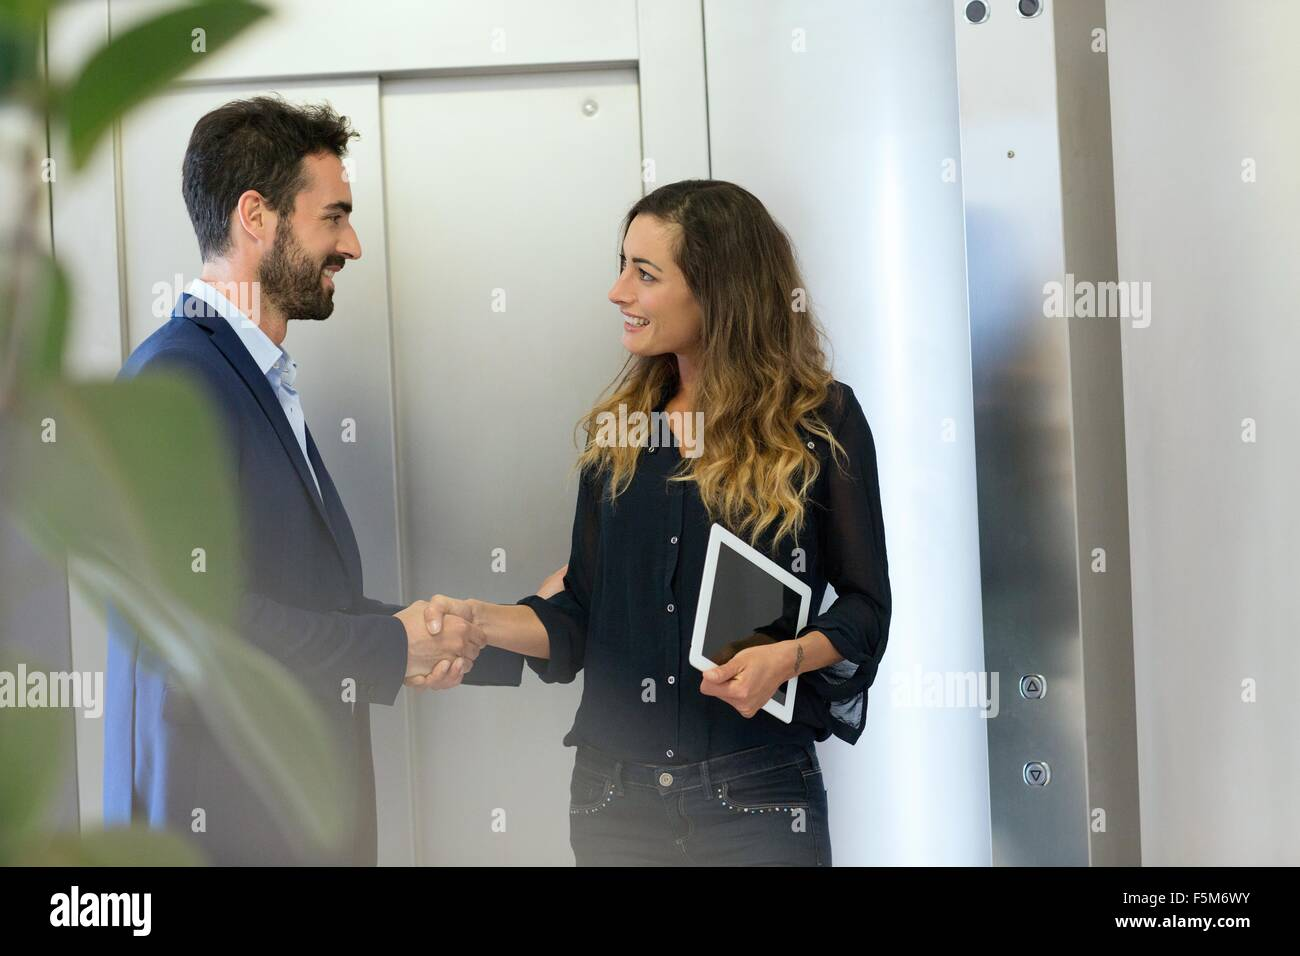 Young businessman and woman shaking hands at elevator - Stock Image